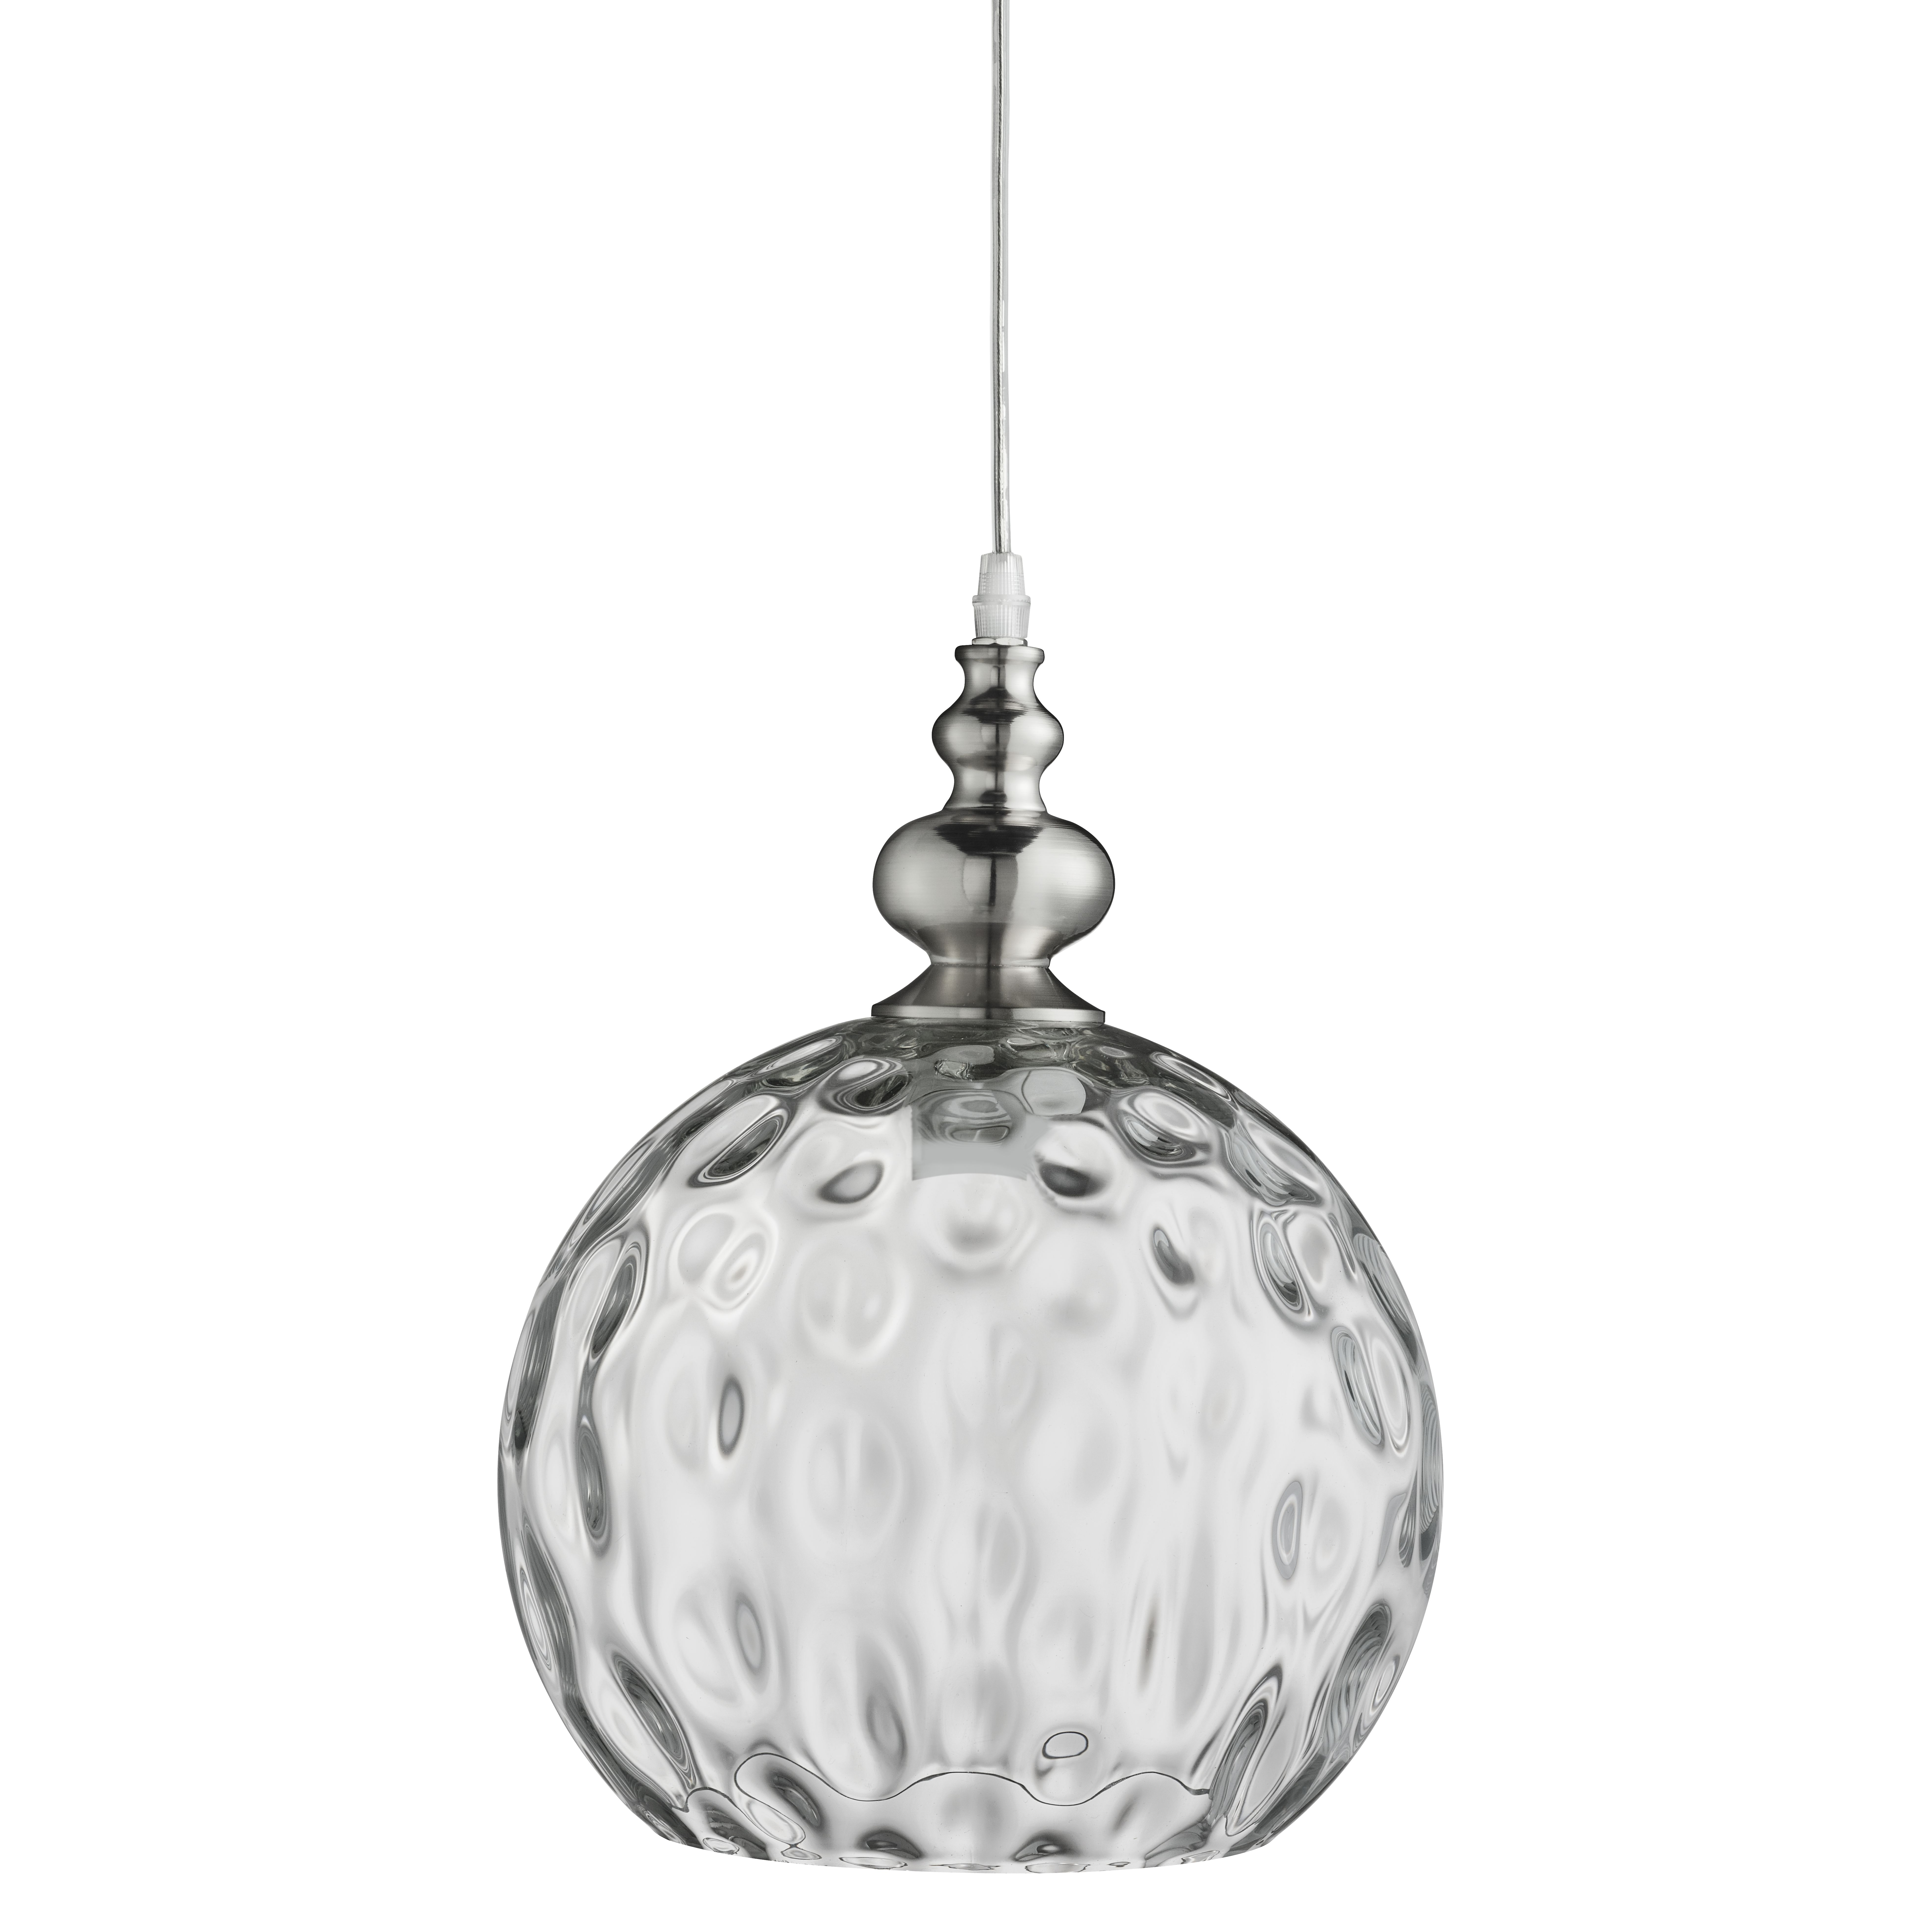 Indiana Satin Silver Globe Pendant Light With Dimpled Glass Shade